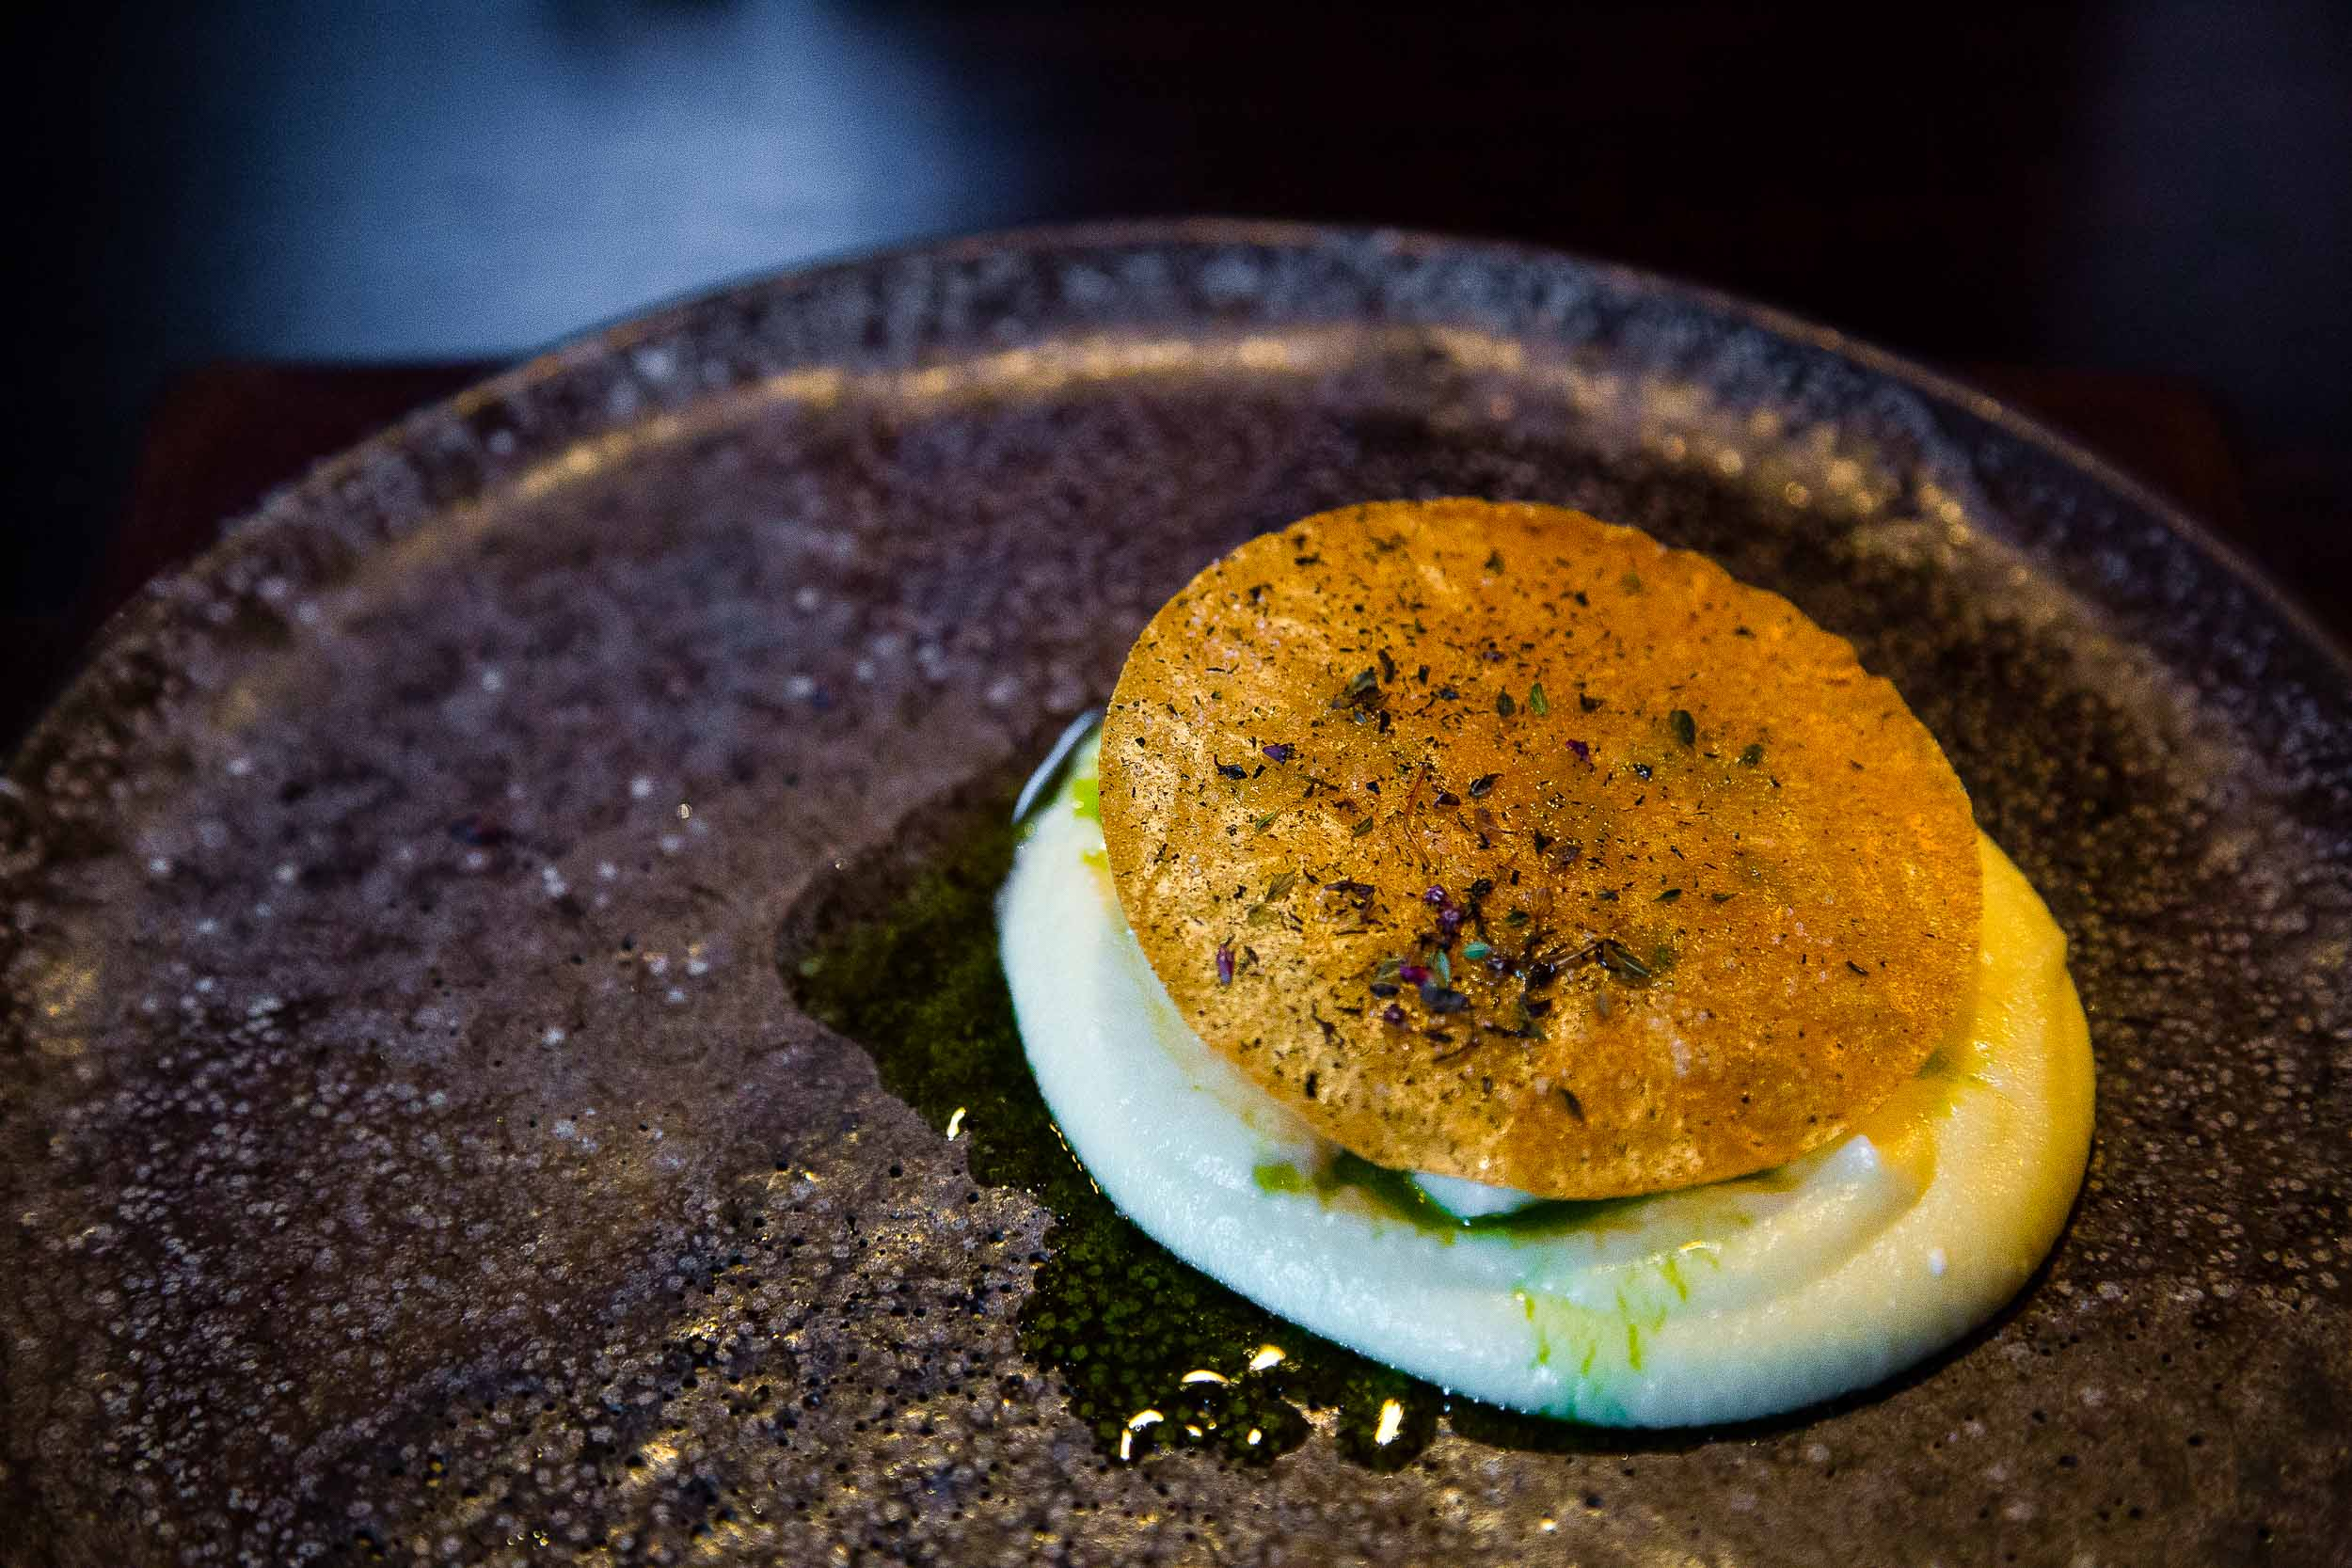 Mashed potatoes, skyr, bacalao, arctic thyme oil, and an arctic thyme crisp